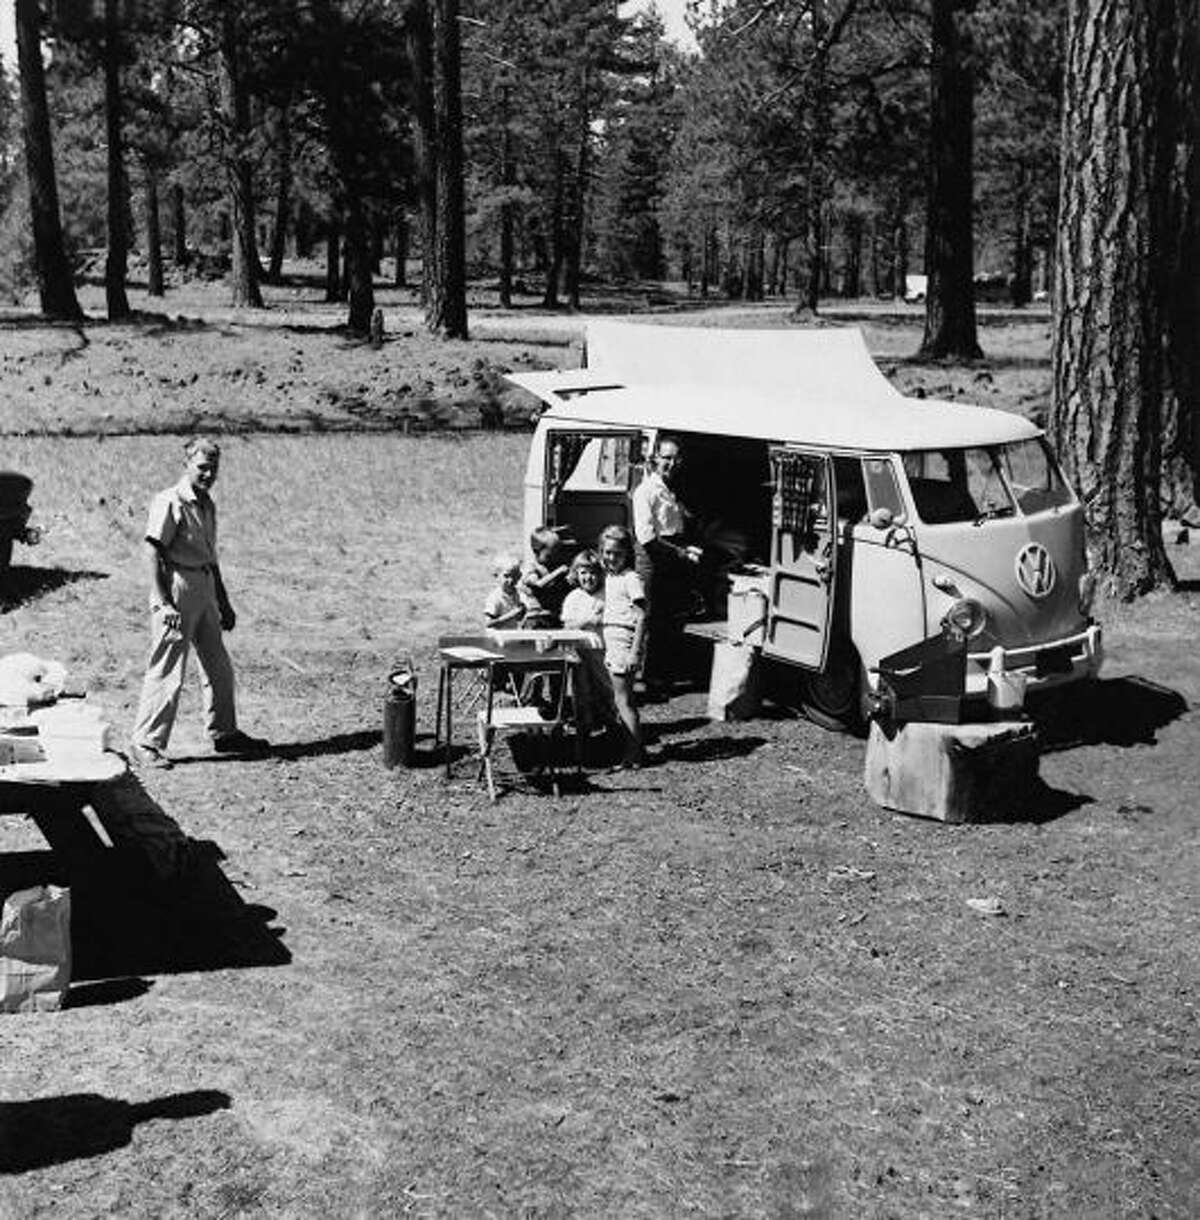 The Braden family camps with their 1960 Volkswagen van at Lassen National Forest, Calif., July 1964.